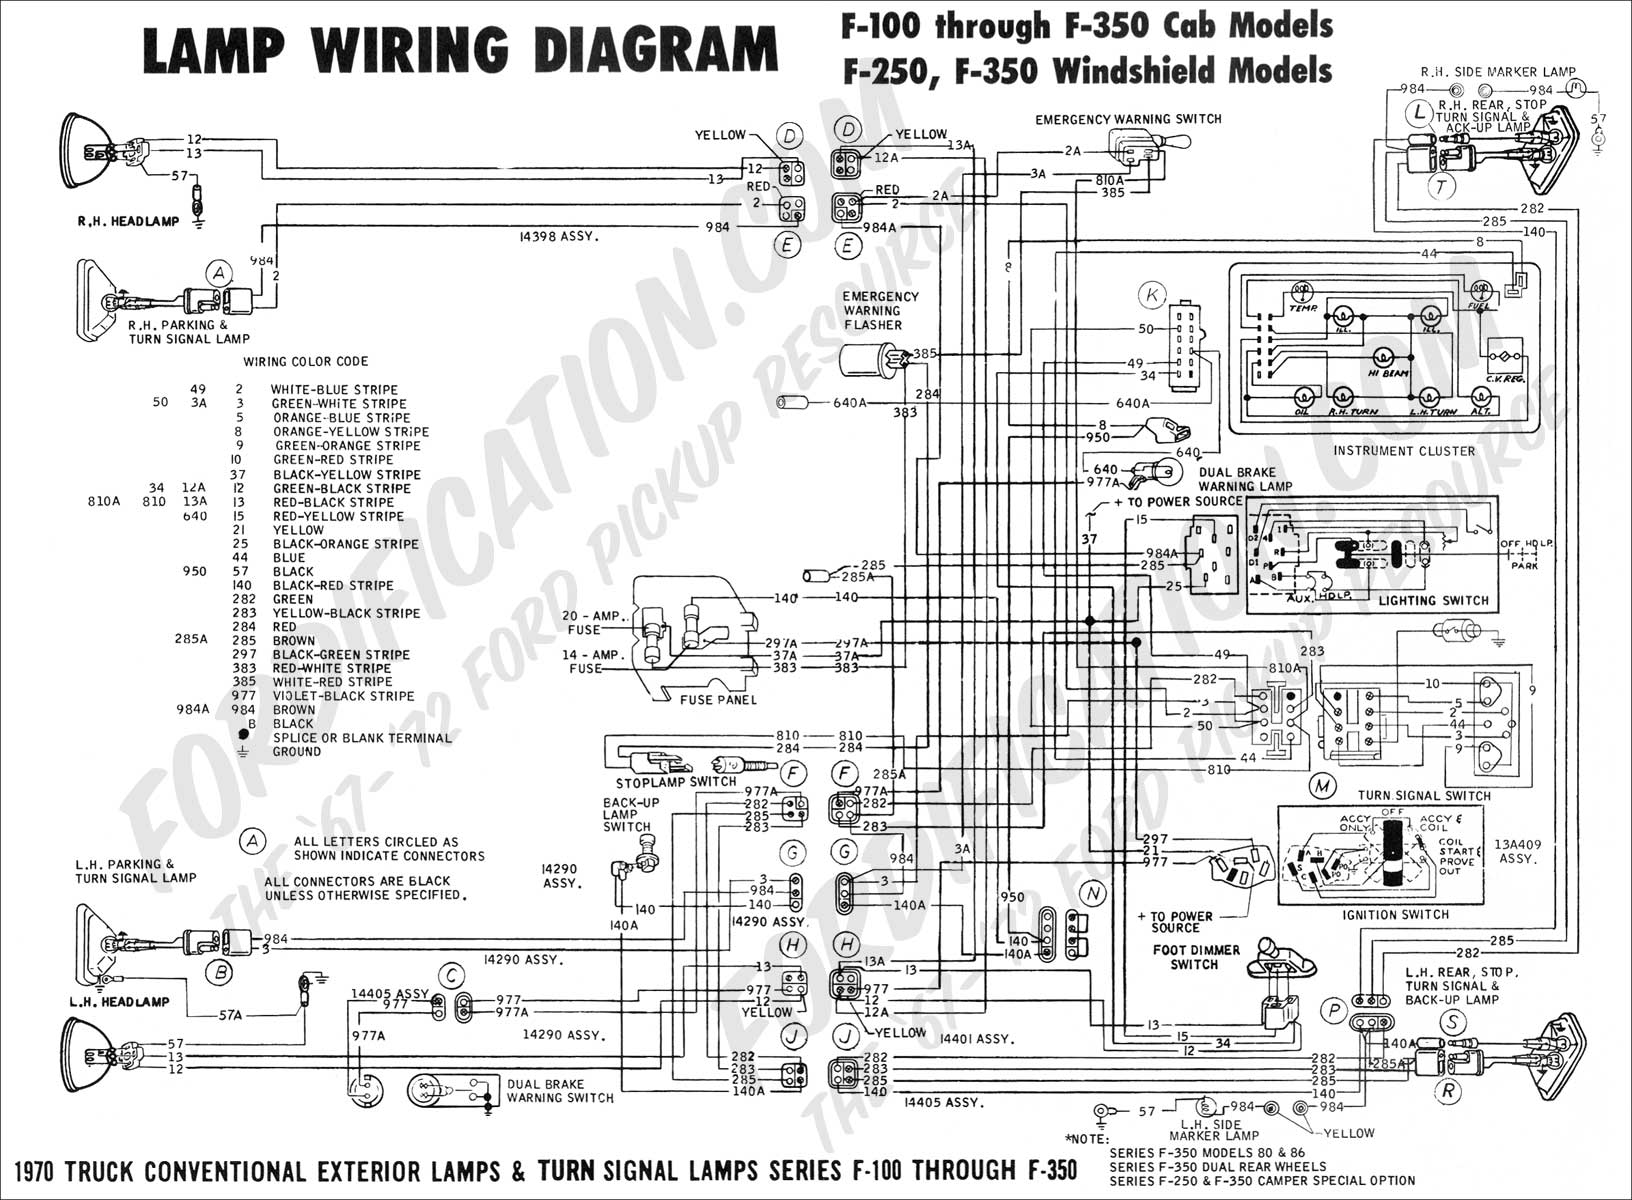 wiring diagram_70ext lights01?resize=665%2C489 wiring harness diagram for 4610 ford tractor the wiring diagram ford wiring harness diagrams at aneh.co